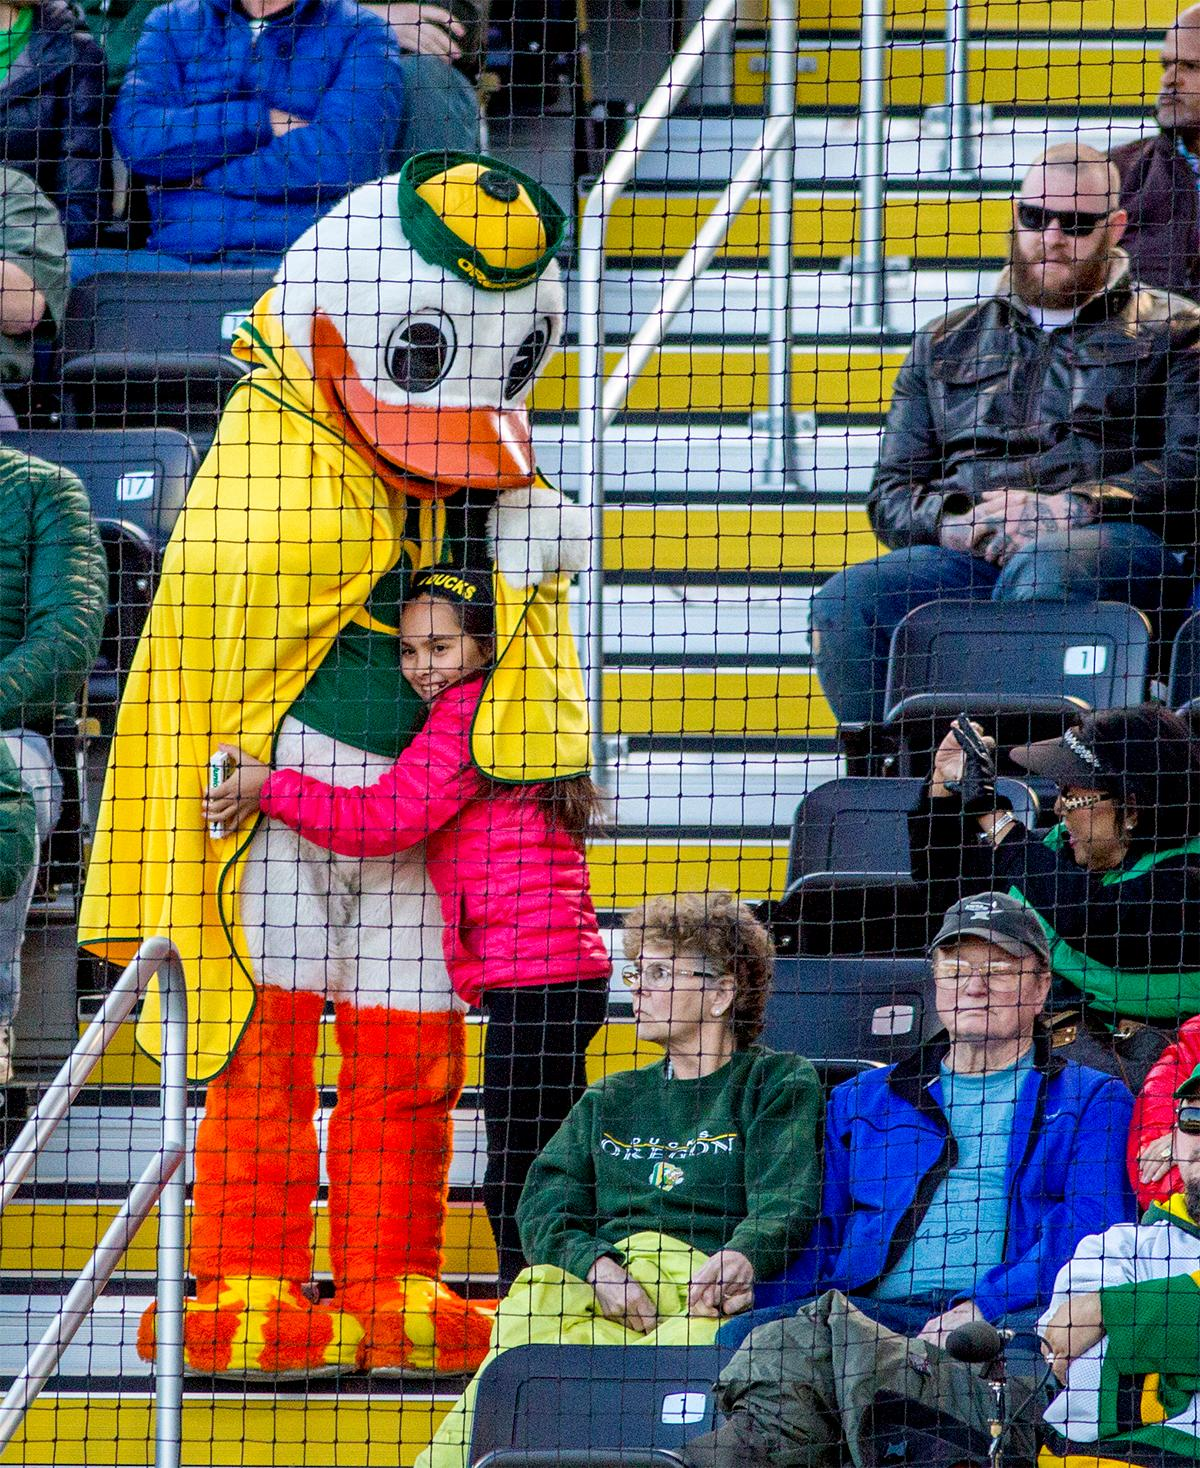 The Duck gives a child a hug while adorned in a cape. The Oregon Ducks defeated the Oregon State Beavers 8-0 in game one of the three-game Civil War series on Friday night at Jane Sanders Stadium. The game was 0-0 until Gwen Svekis (#21) hit a solo home run in the fourth inning. Mia Camuso hit a grand slam in the fifth inning, ending the game for the Ducks by mercy rule. With tonight's victory, the Ducks are 39-6 and 12-6 in Pac-12 play. Photo by August Frank, Oregon News Lab